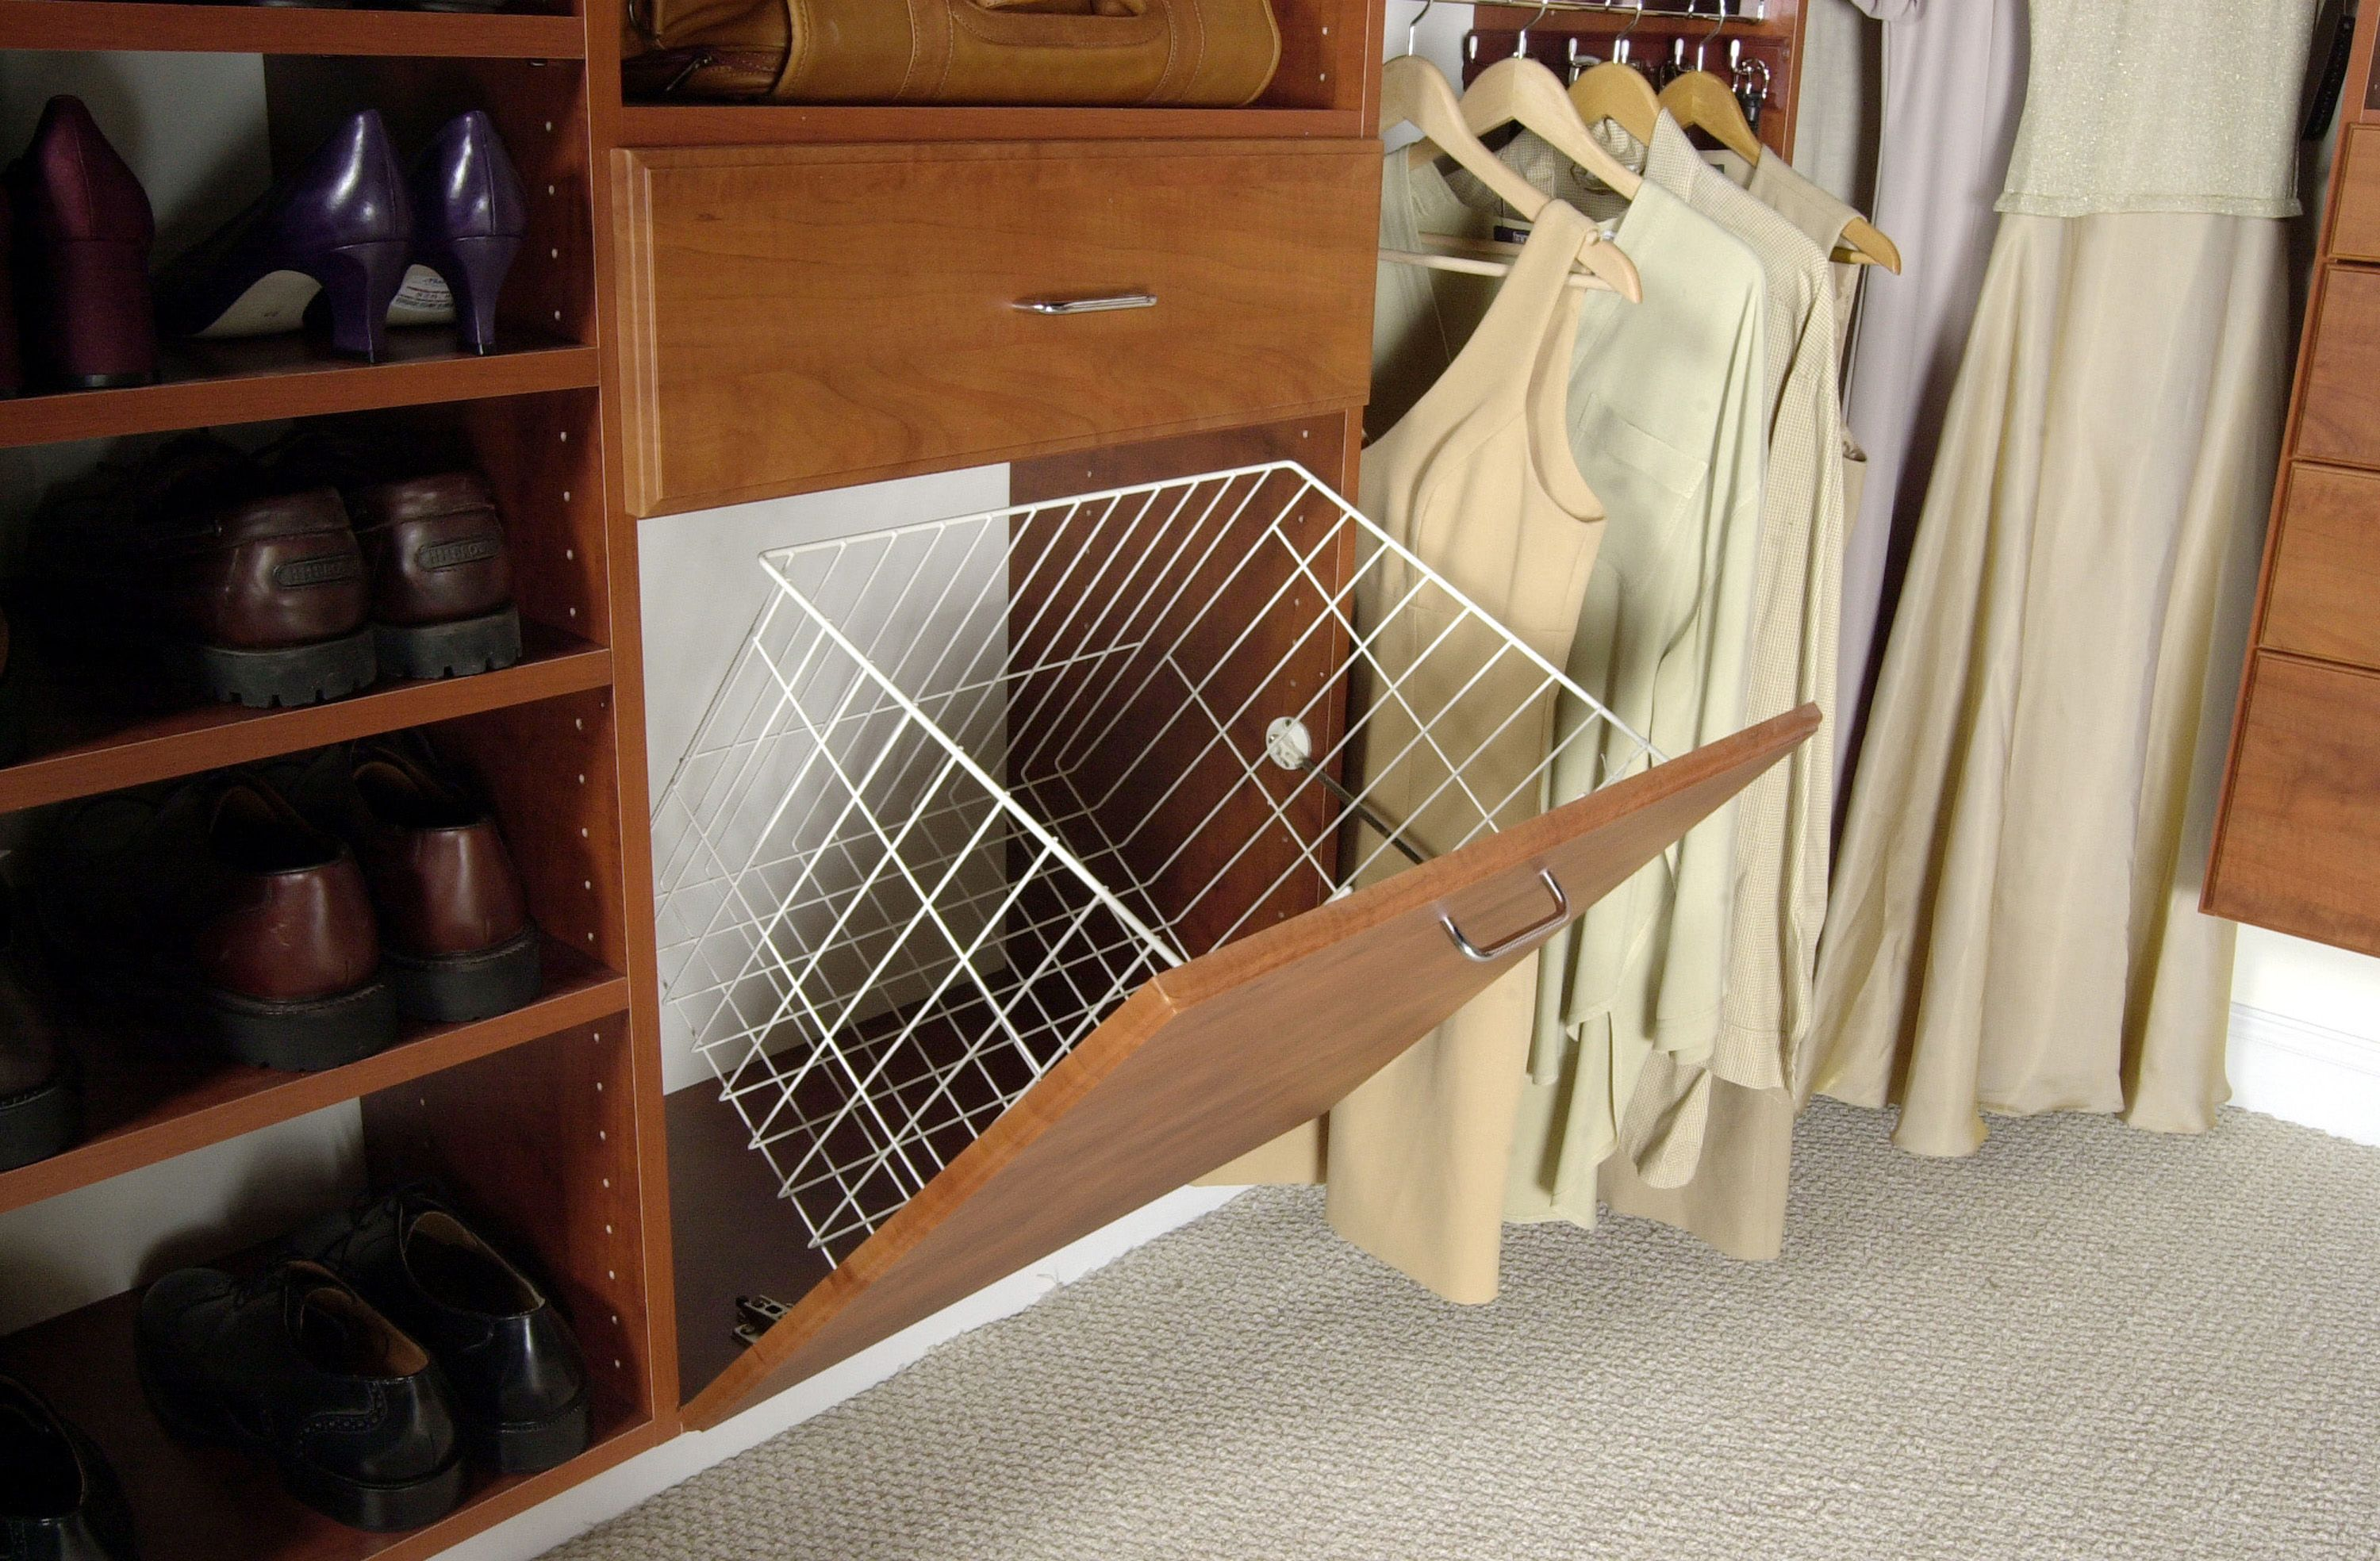 Exceptional Tilt Out Laundry Hamper   Hamper Basket Is Easily Removed.